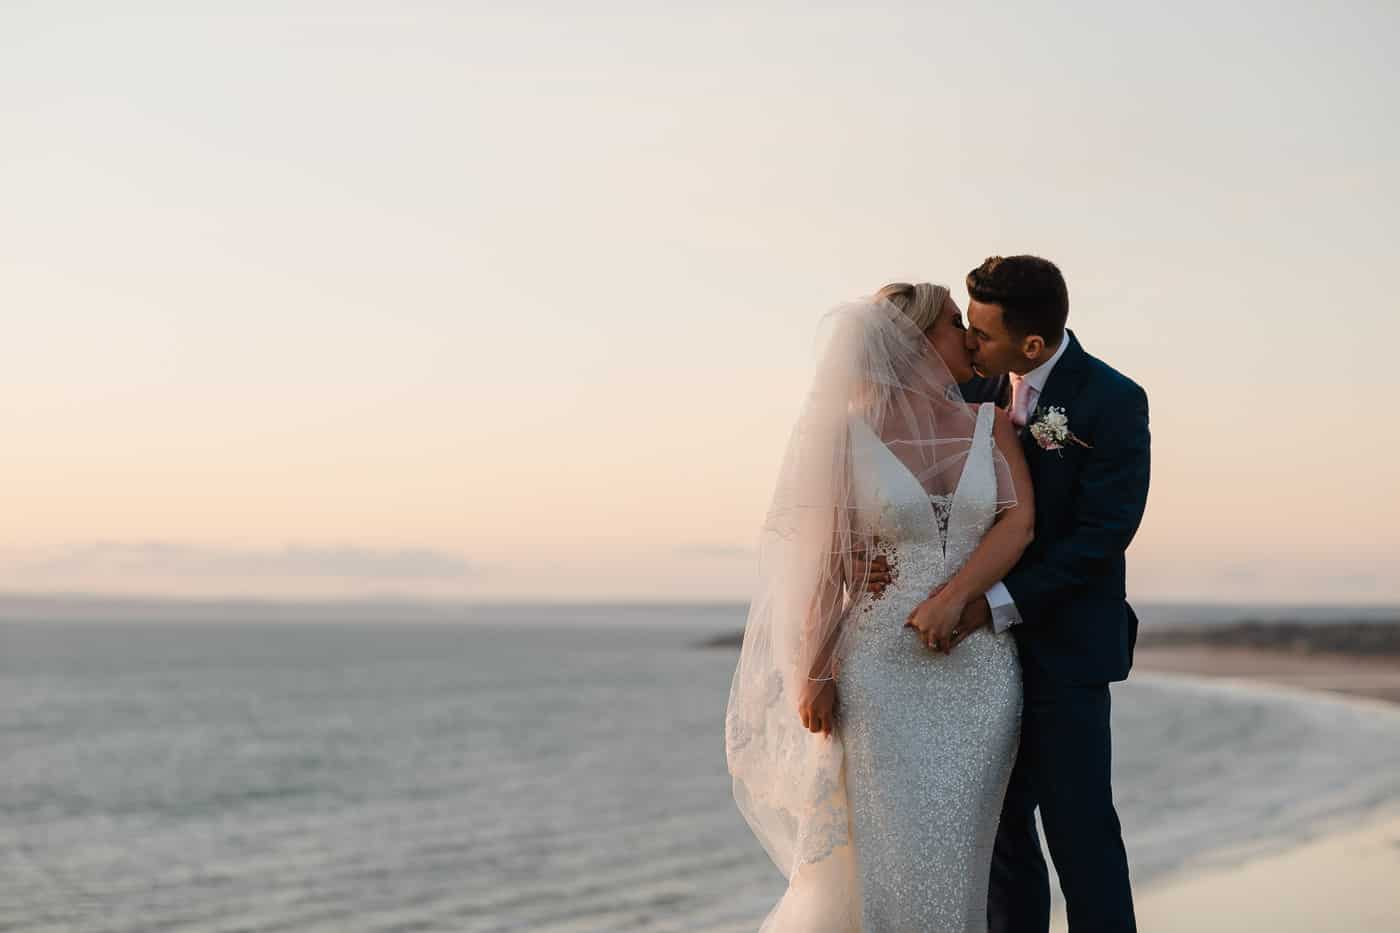 bride and groom at golden hour overlooking sea and kissing